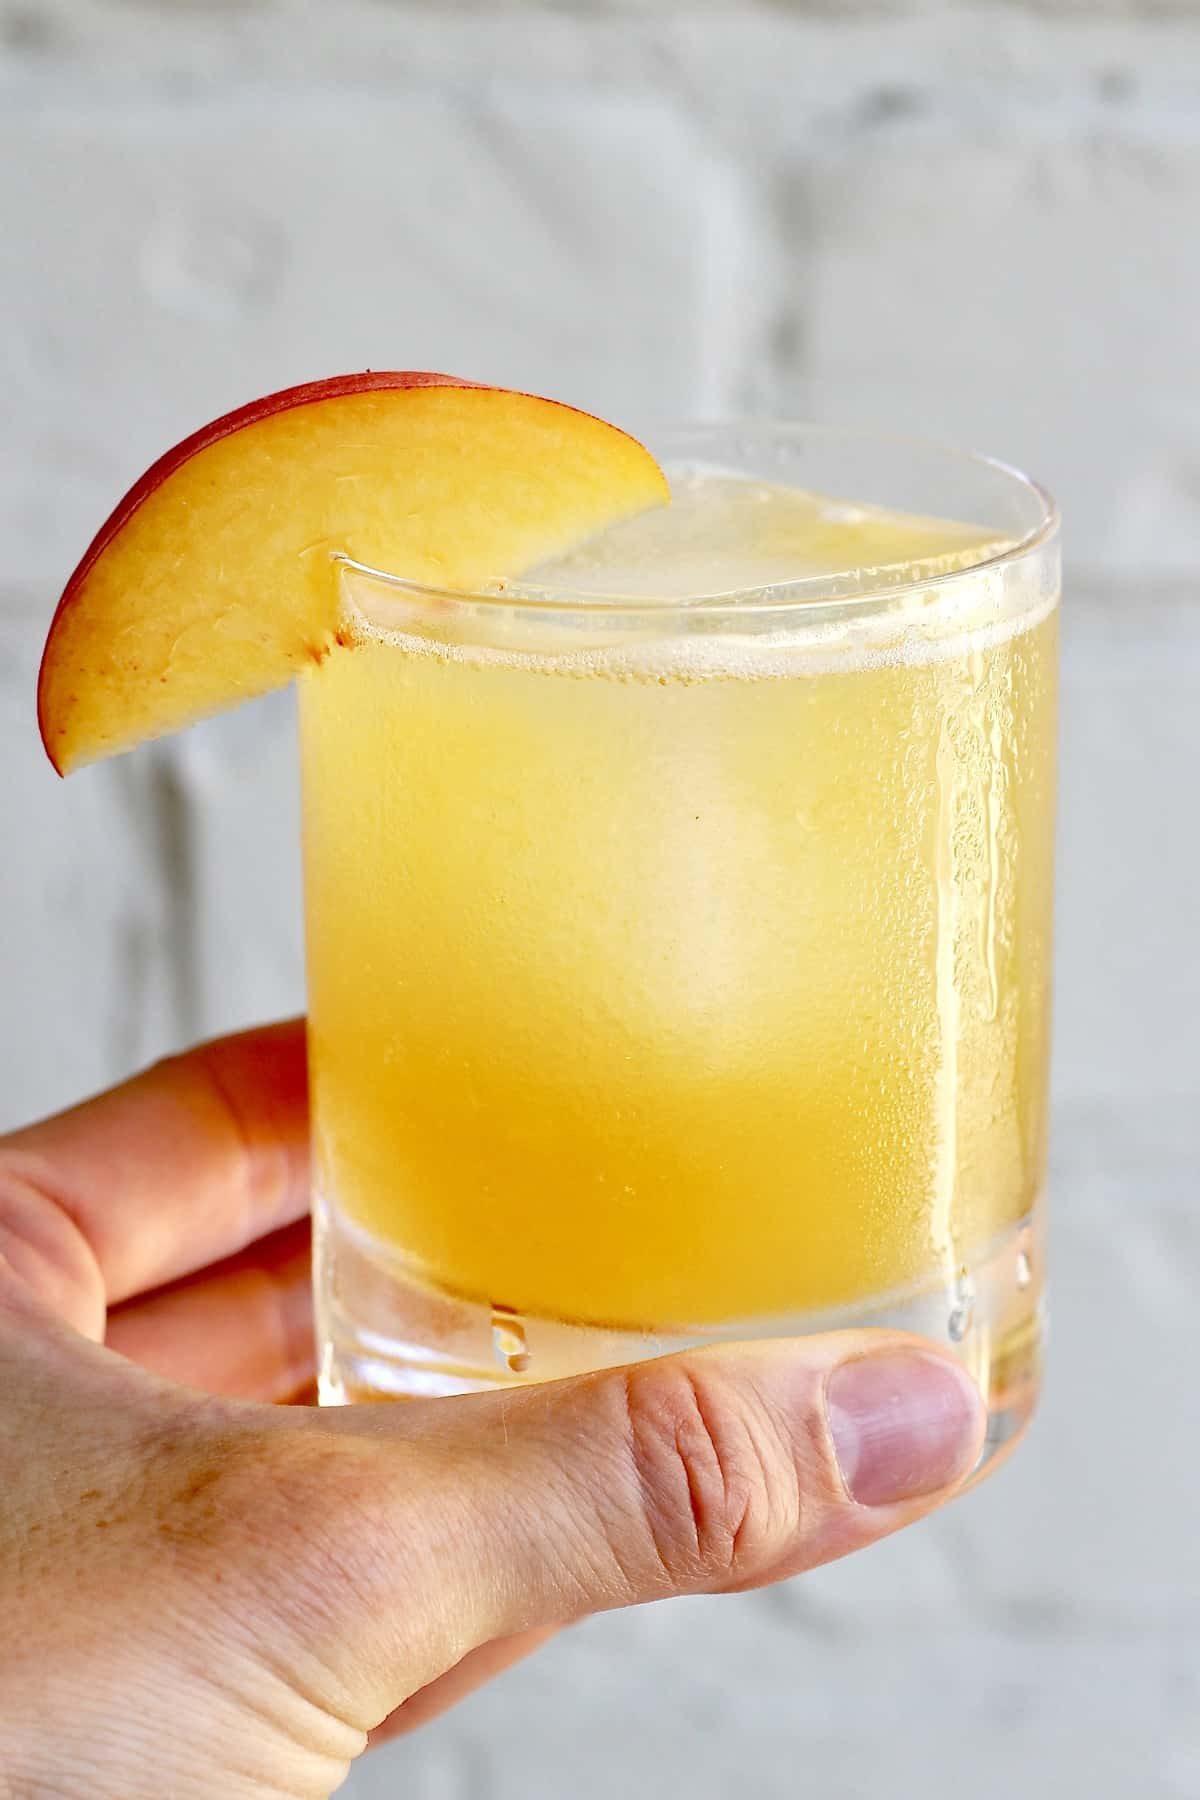 Peachy Keen Cocktail